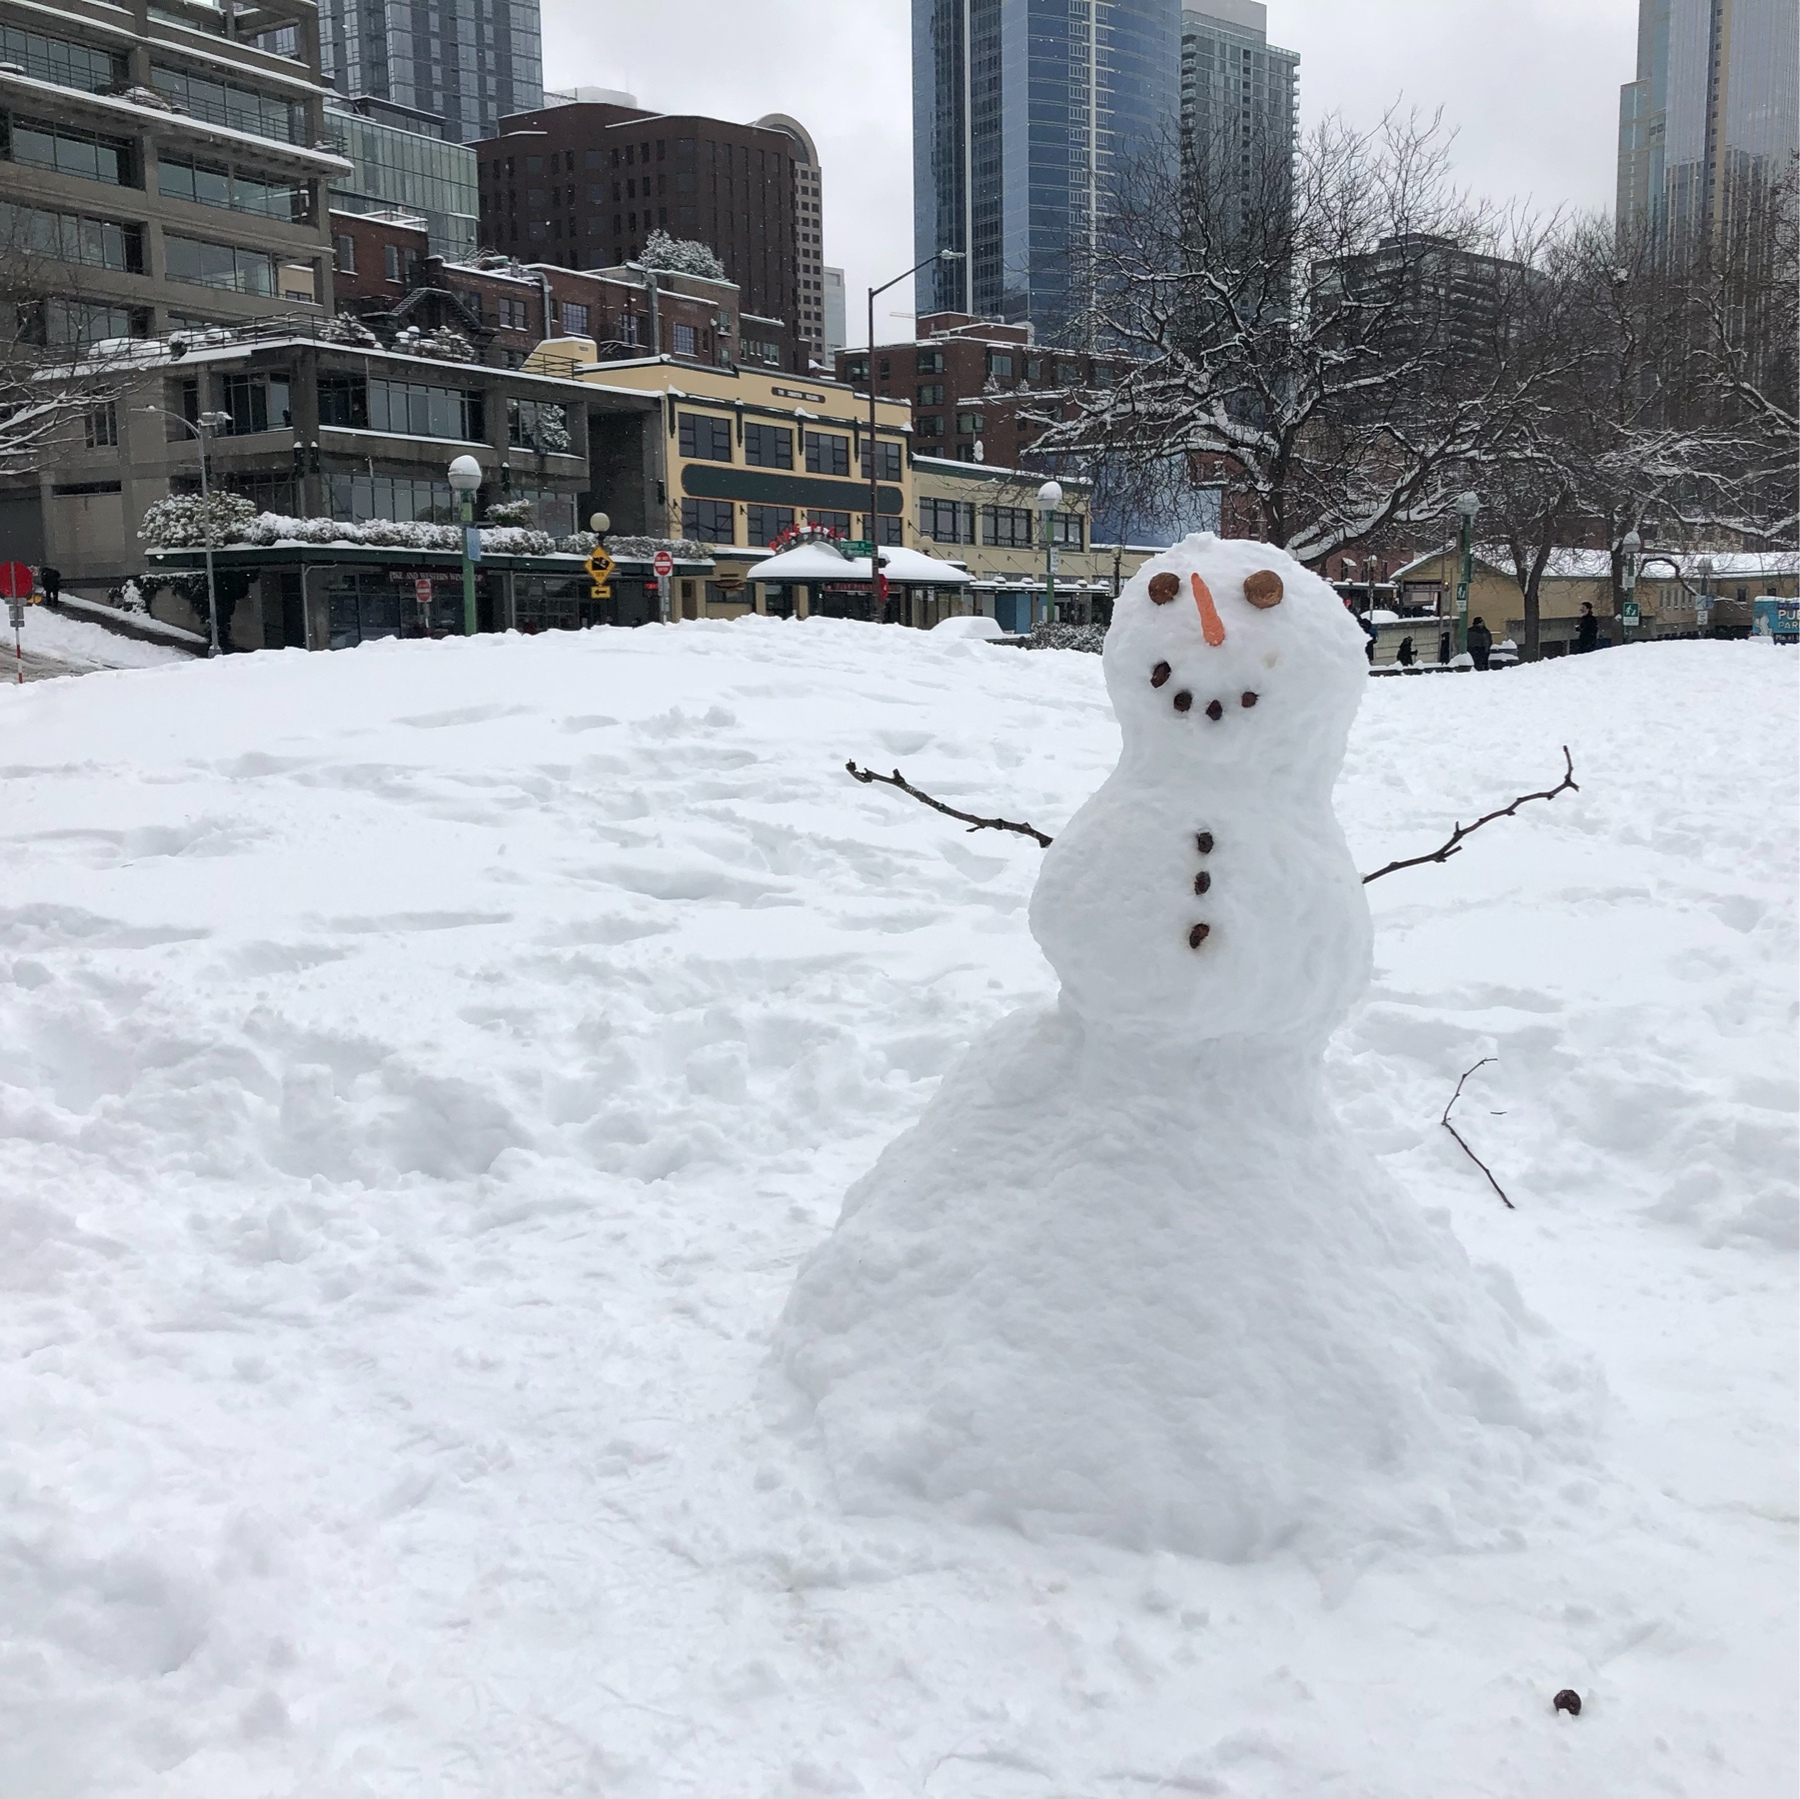 A friendly snowman in a downtown park